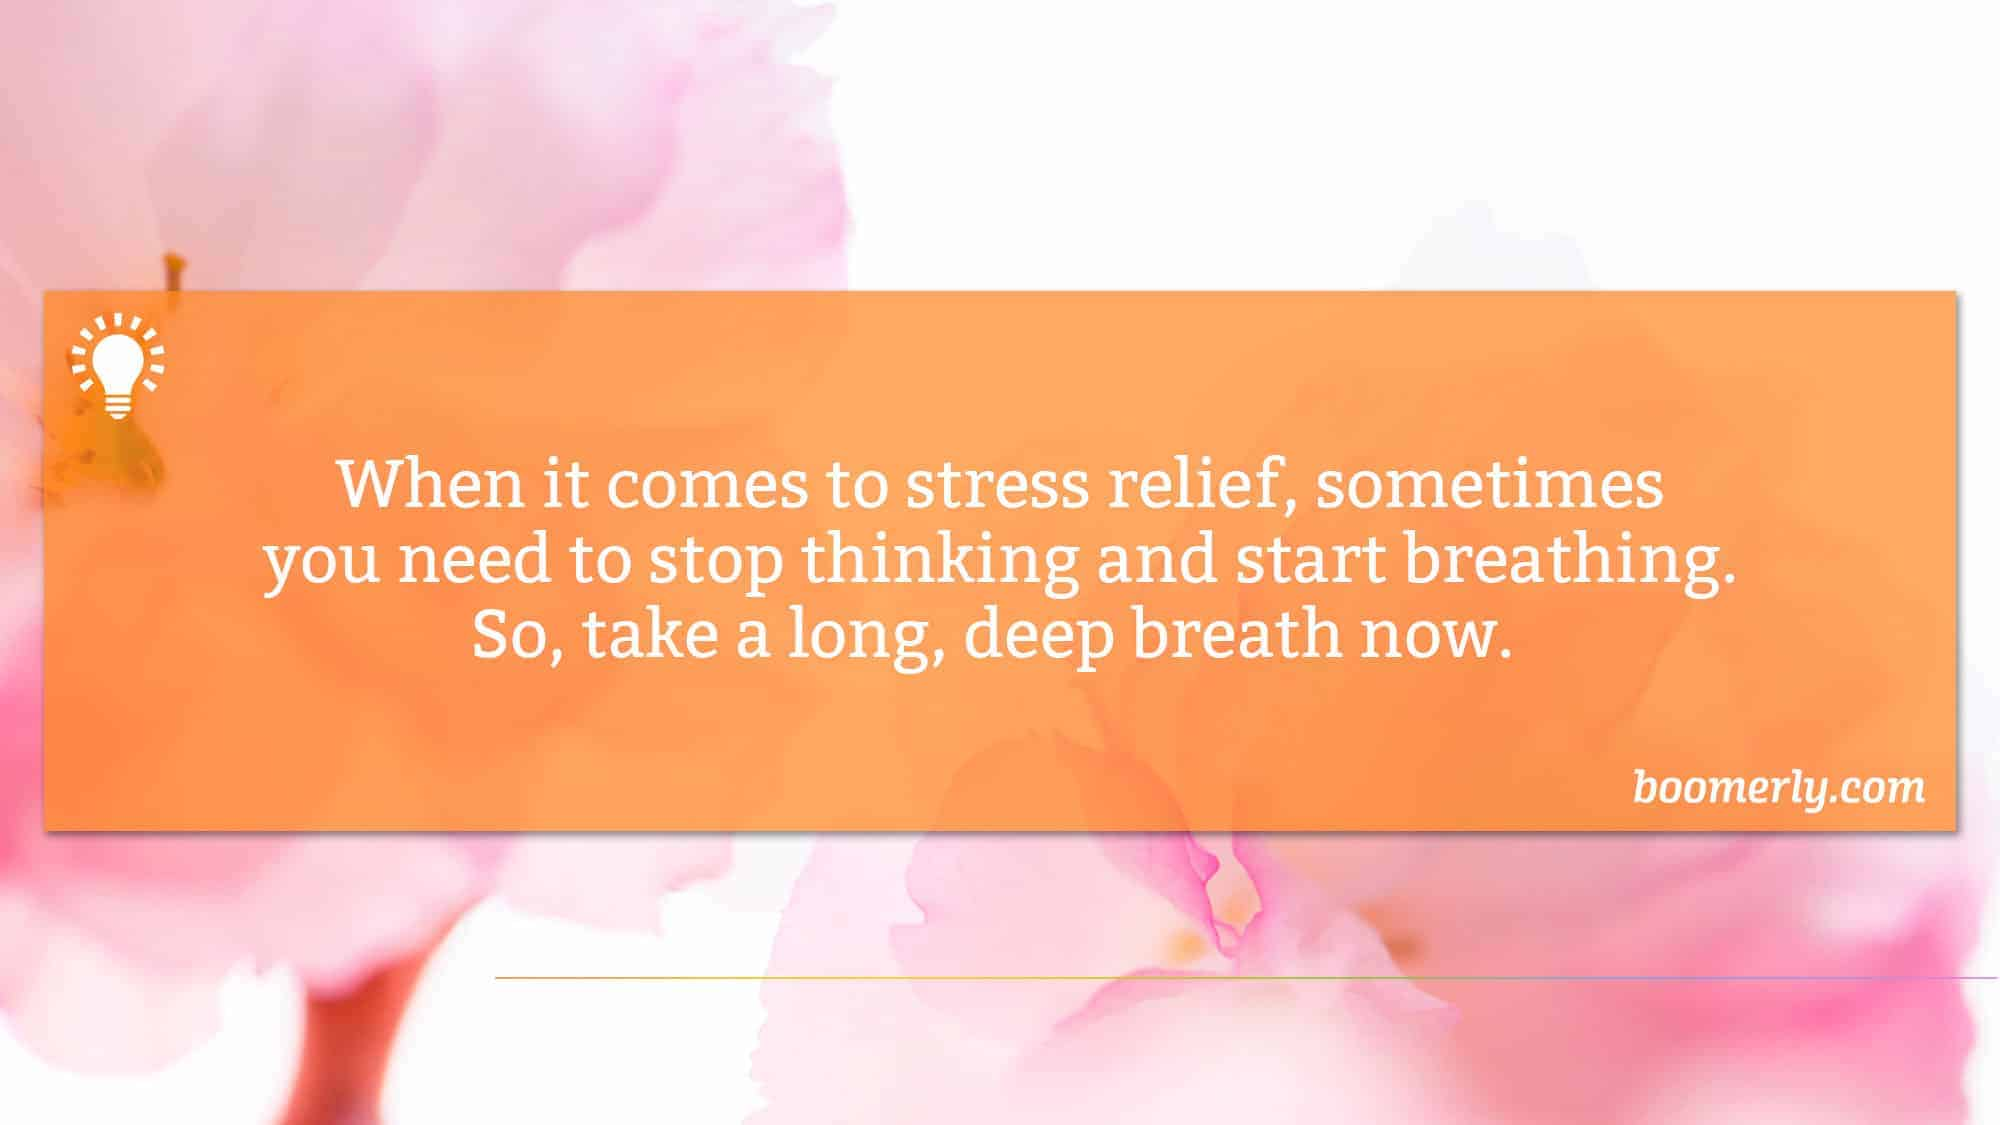 Better Breathing Can Help You to Reduce Stress